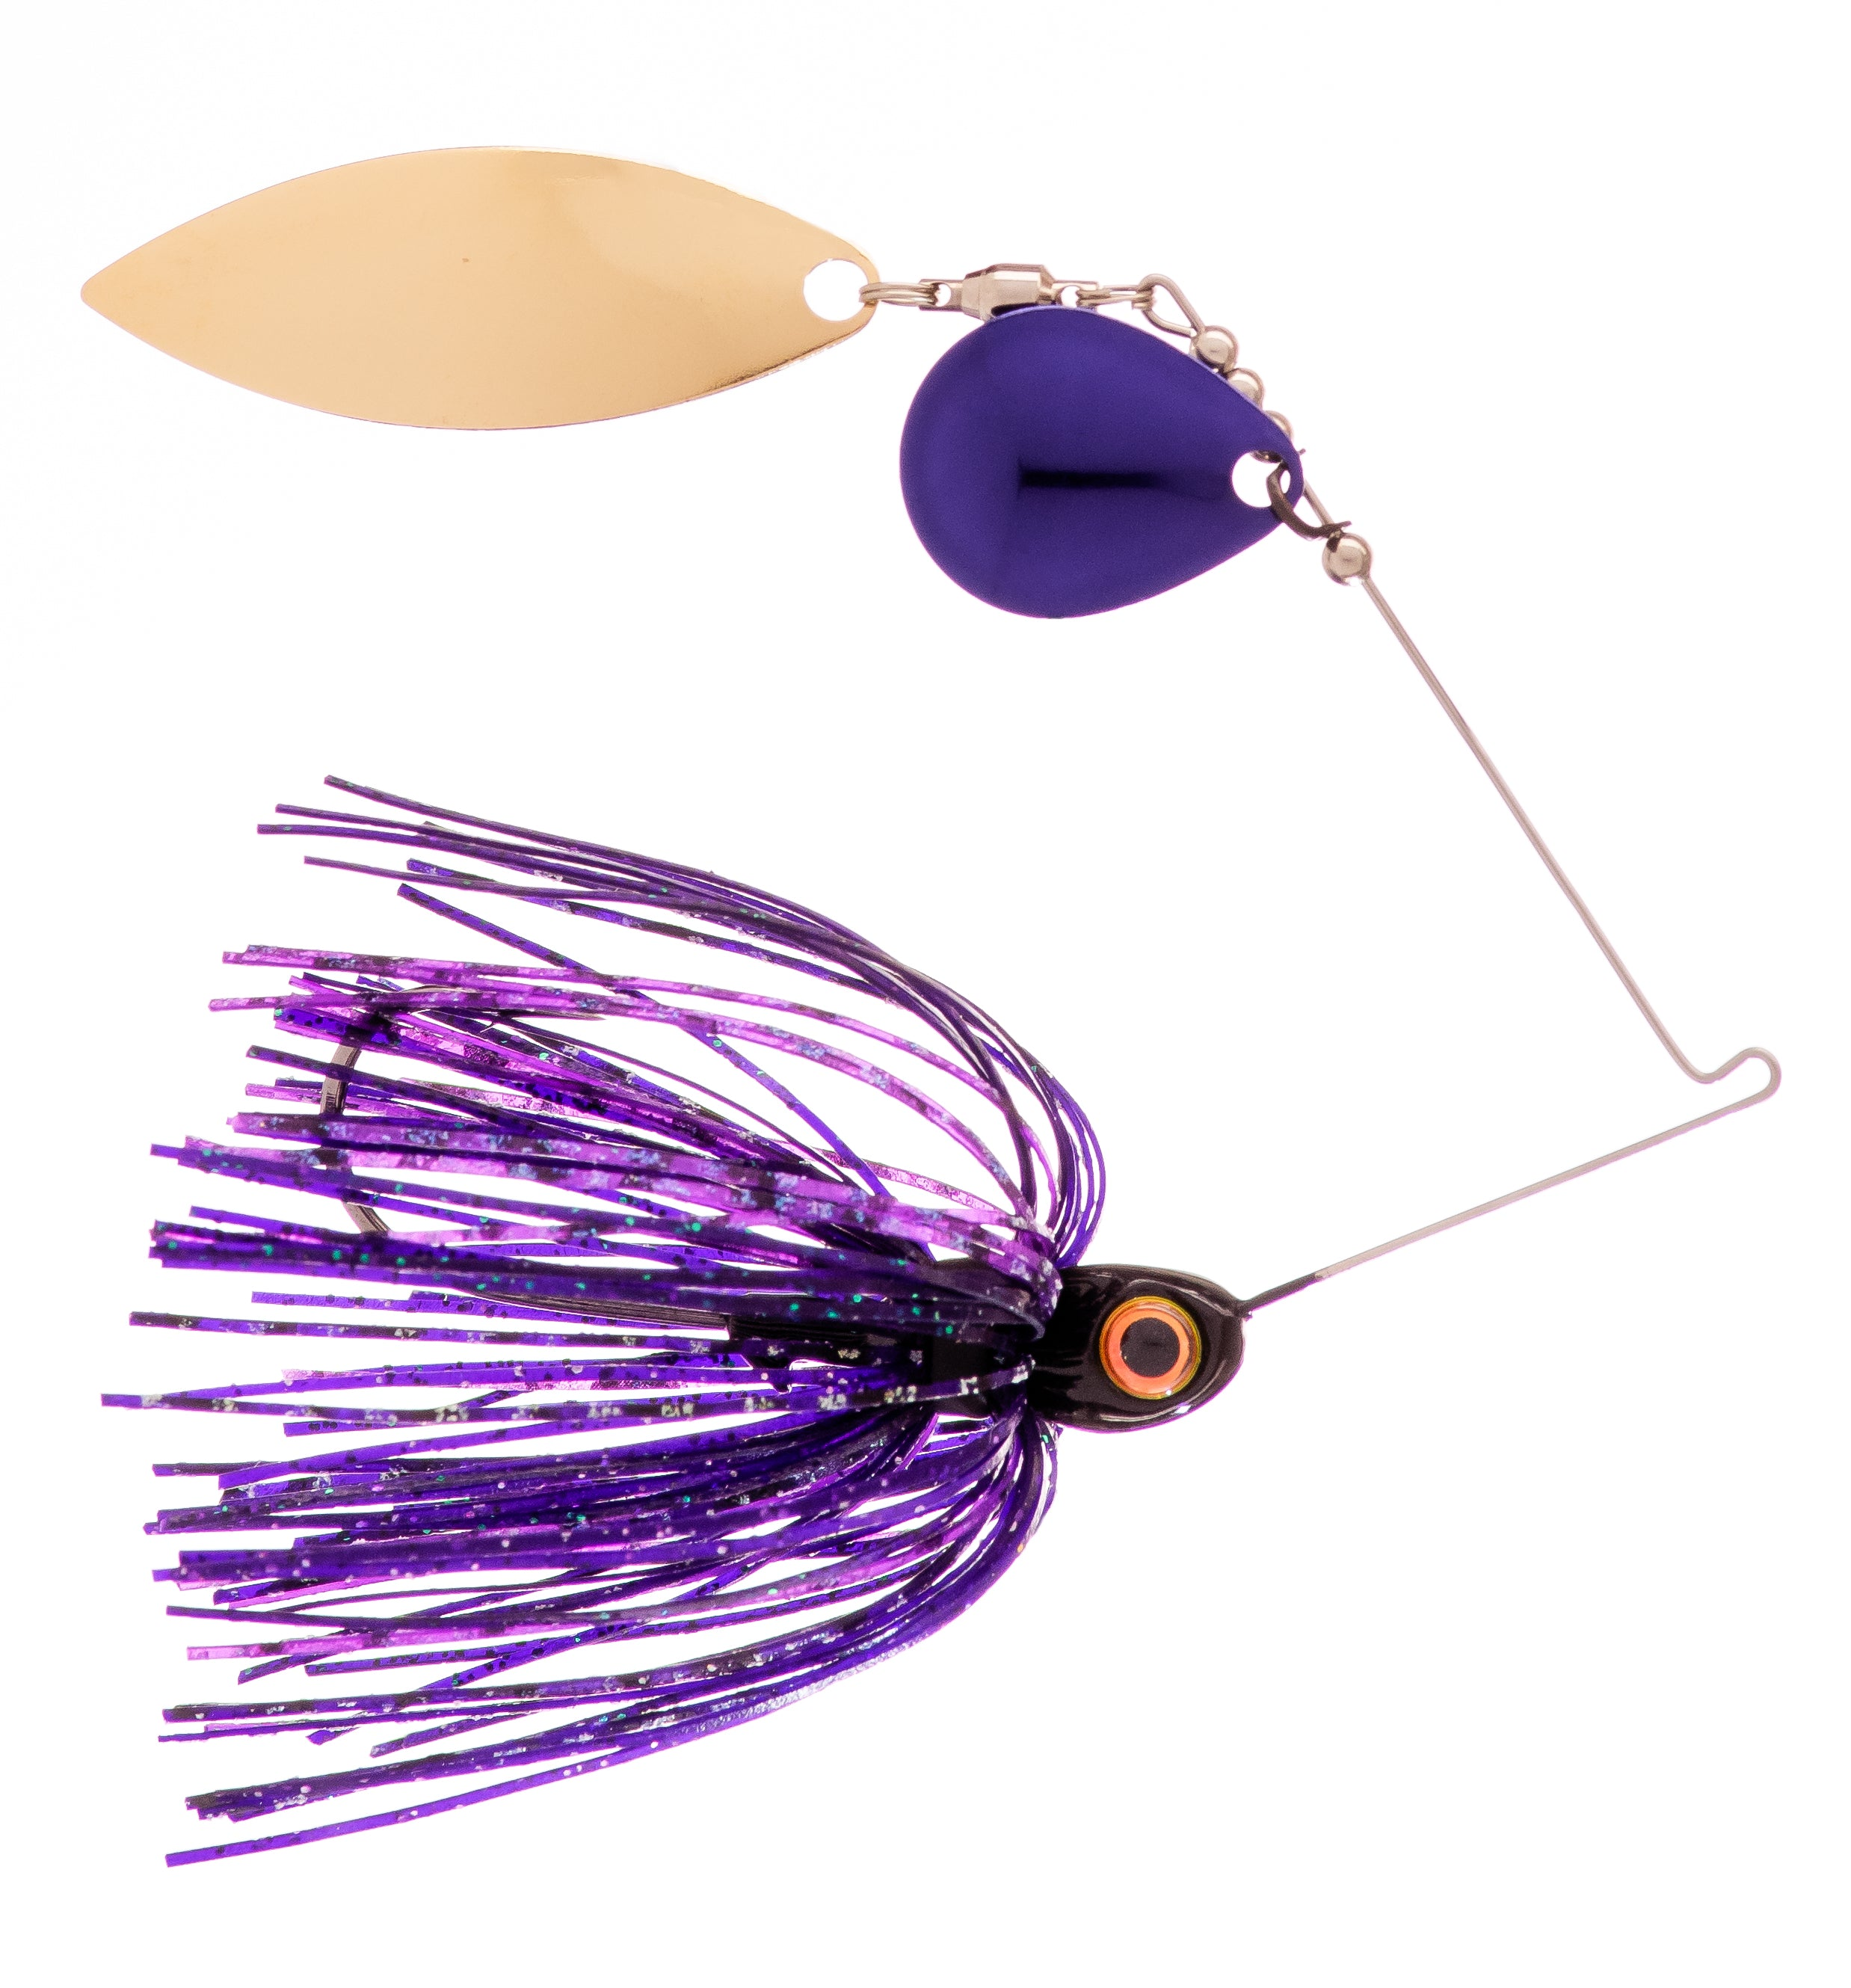 3/8 oz Junebug Spinner Baits - Kajun Boss Outdoors